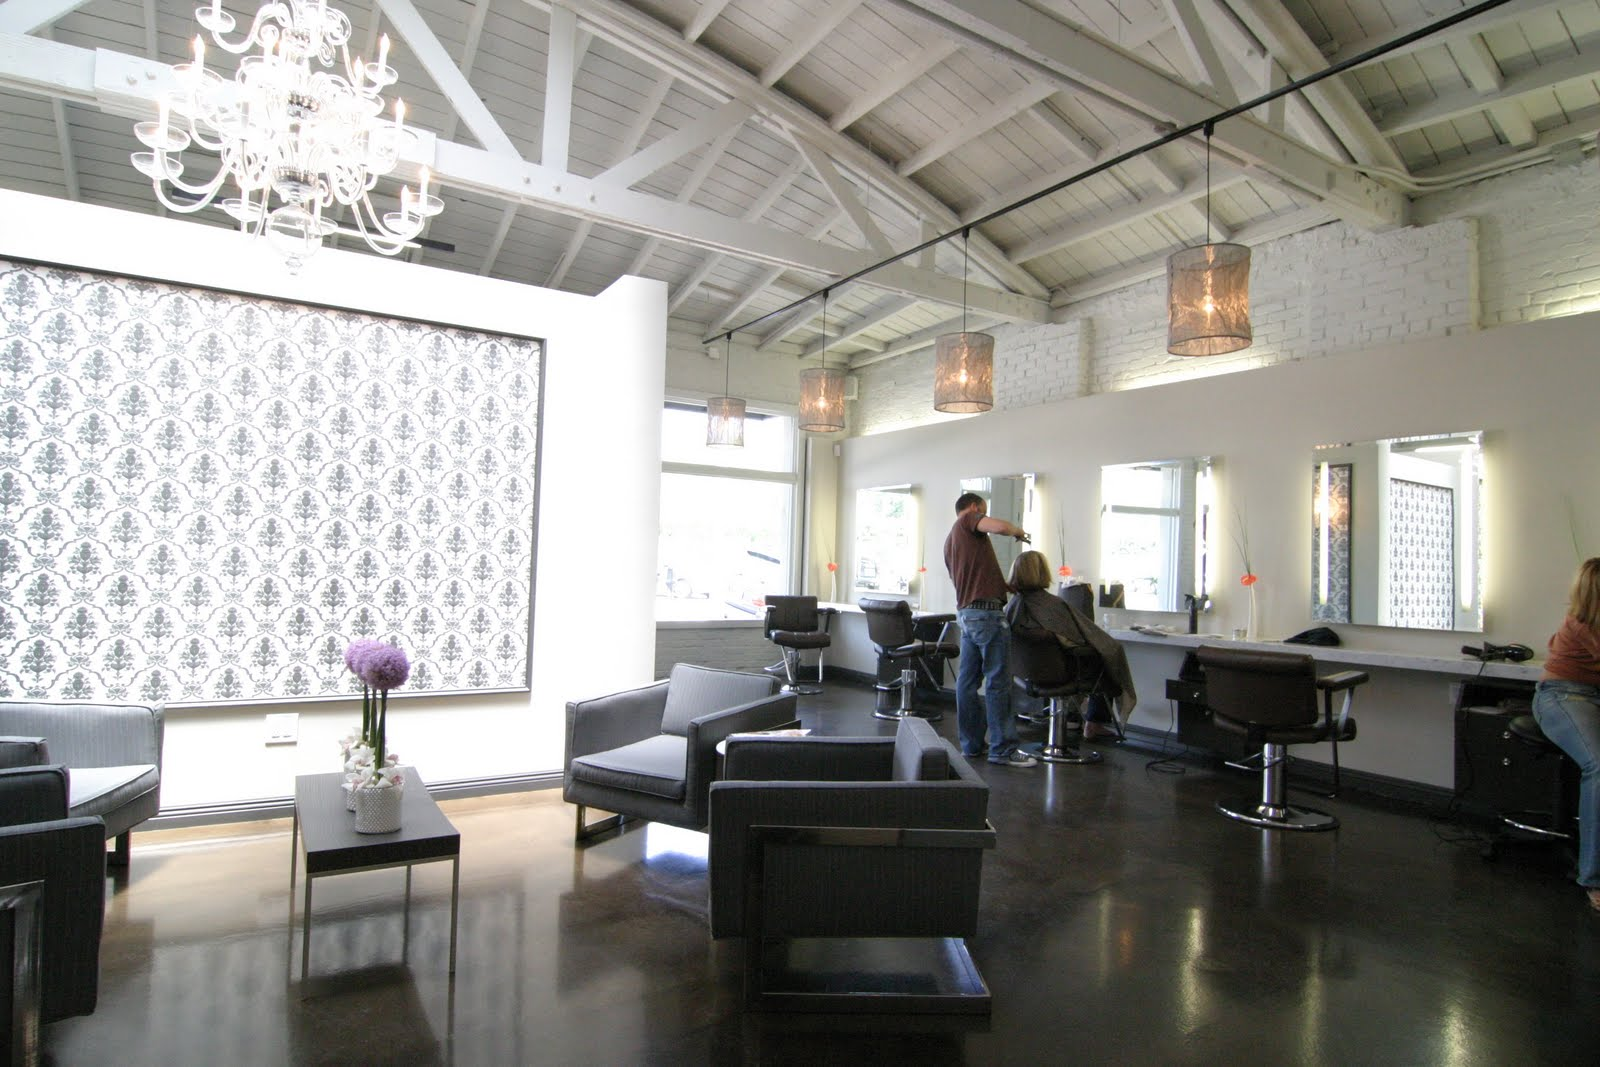 """The space, pre-makeover. Photo via <a href=""""http://celebritymakeupartistinhollywood.blogspot.com/2010/04/my-top-10-places-in-la-for-looking-and.html"""">Celebrity Makeup Artist in Hollywood</a>."""